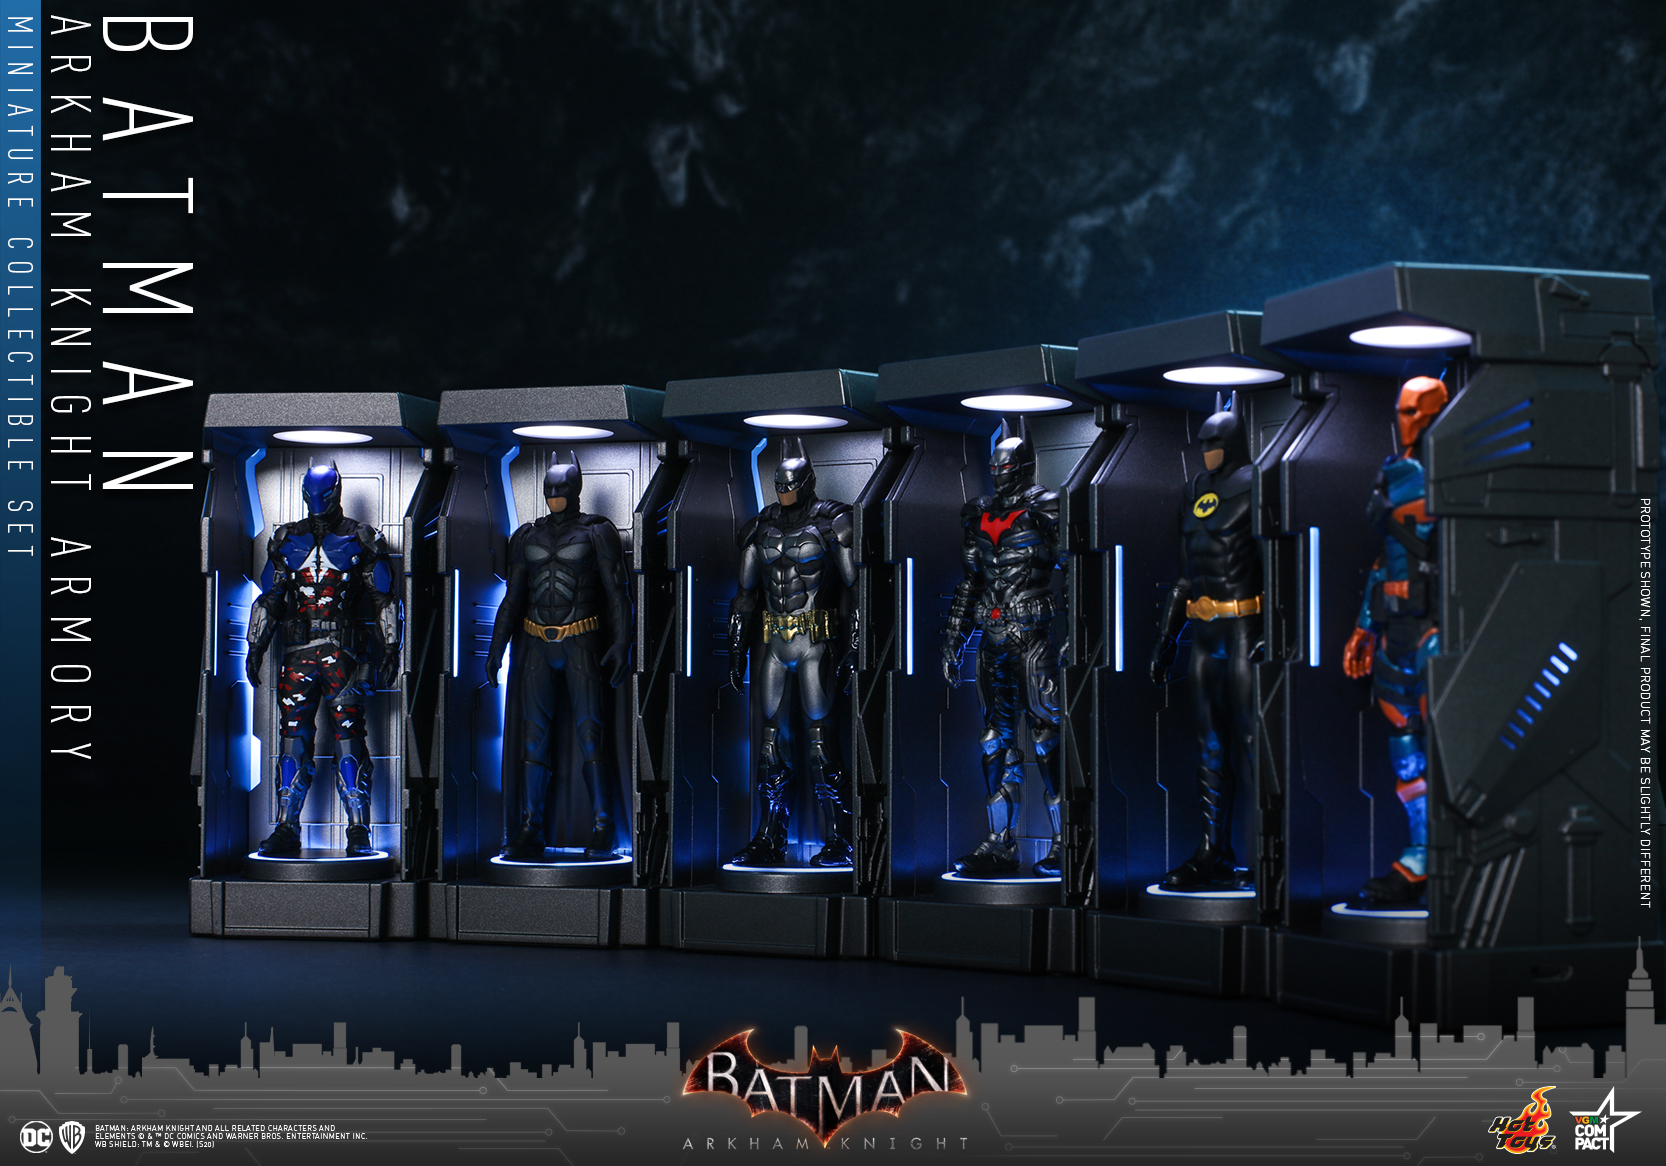 Hot Toys - BAK - Batman Armory Miniature Set_PR4